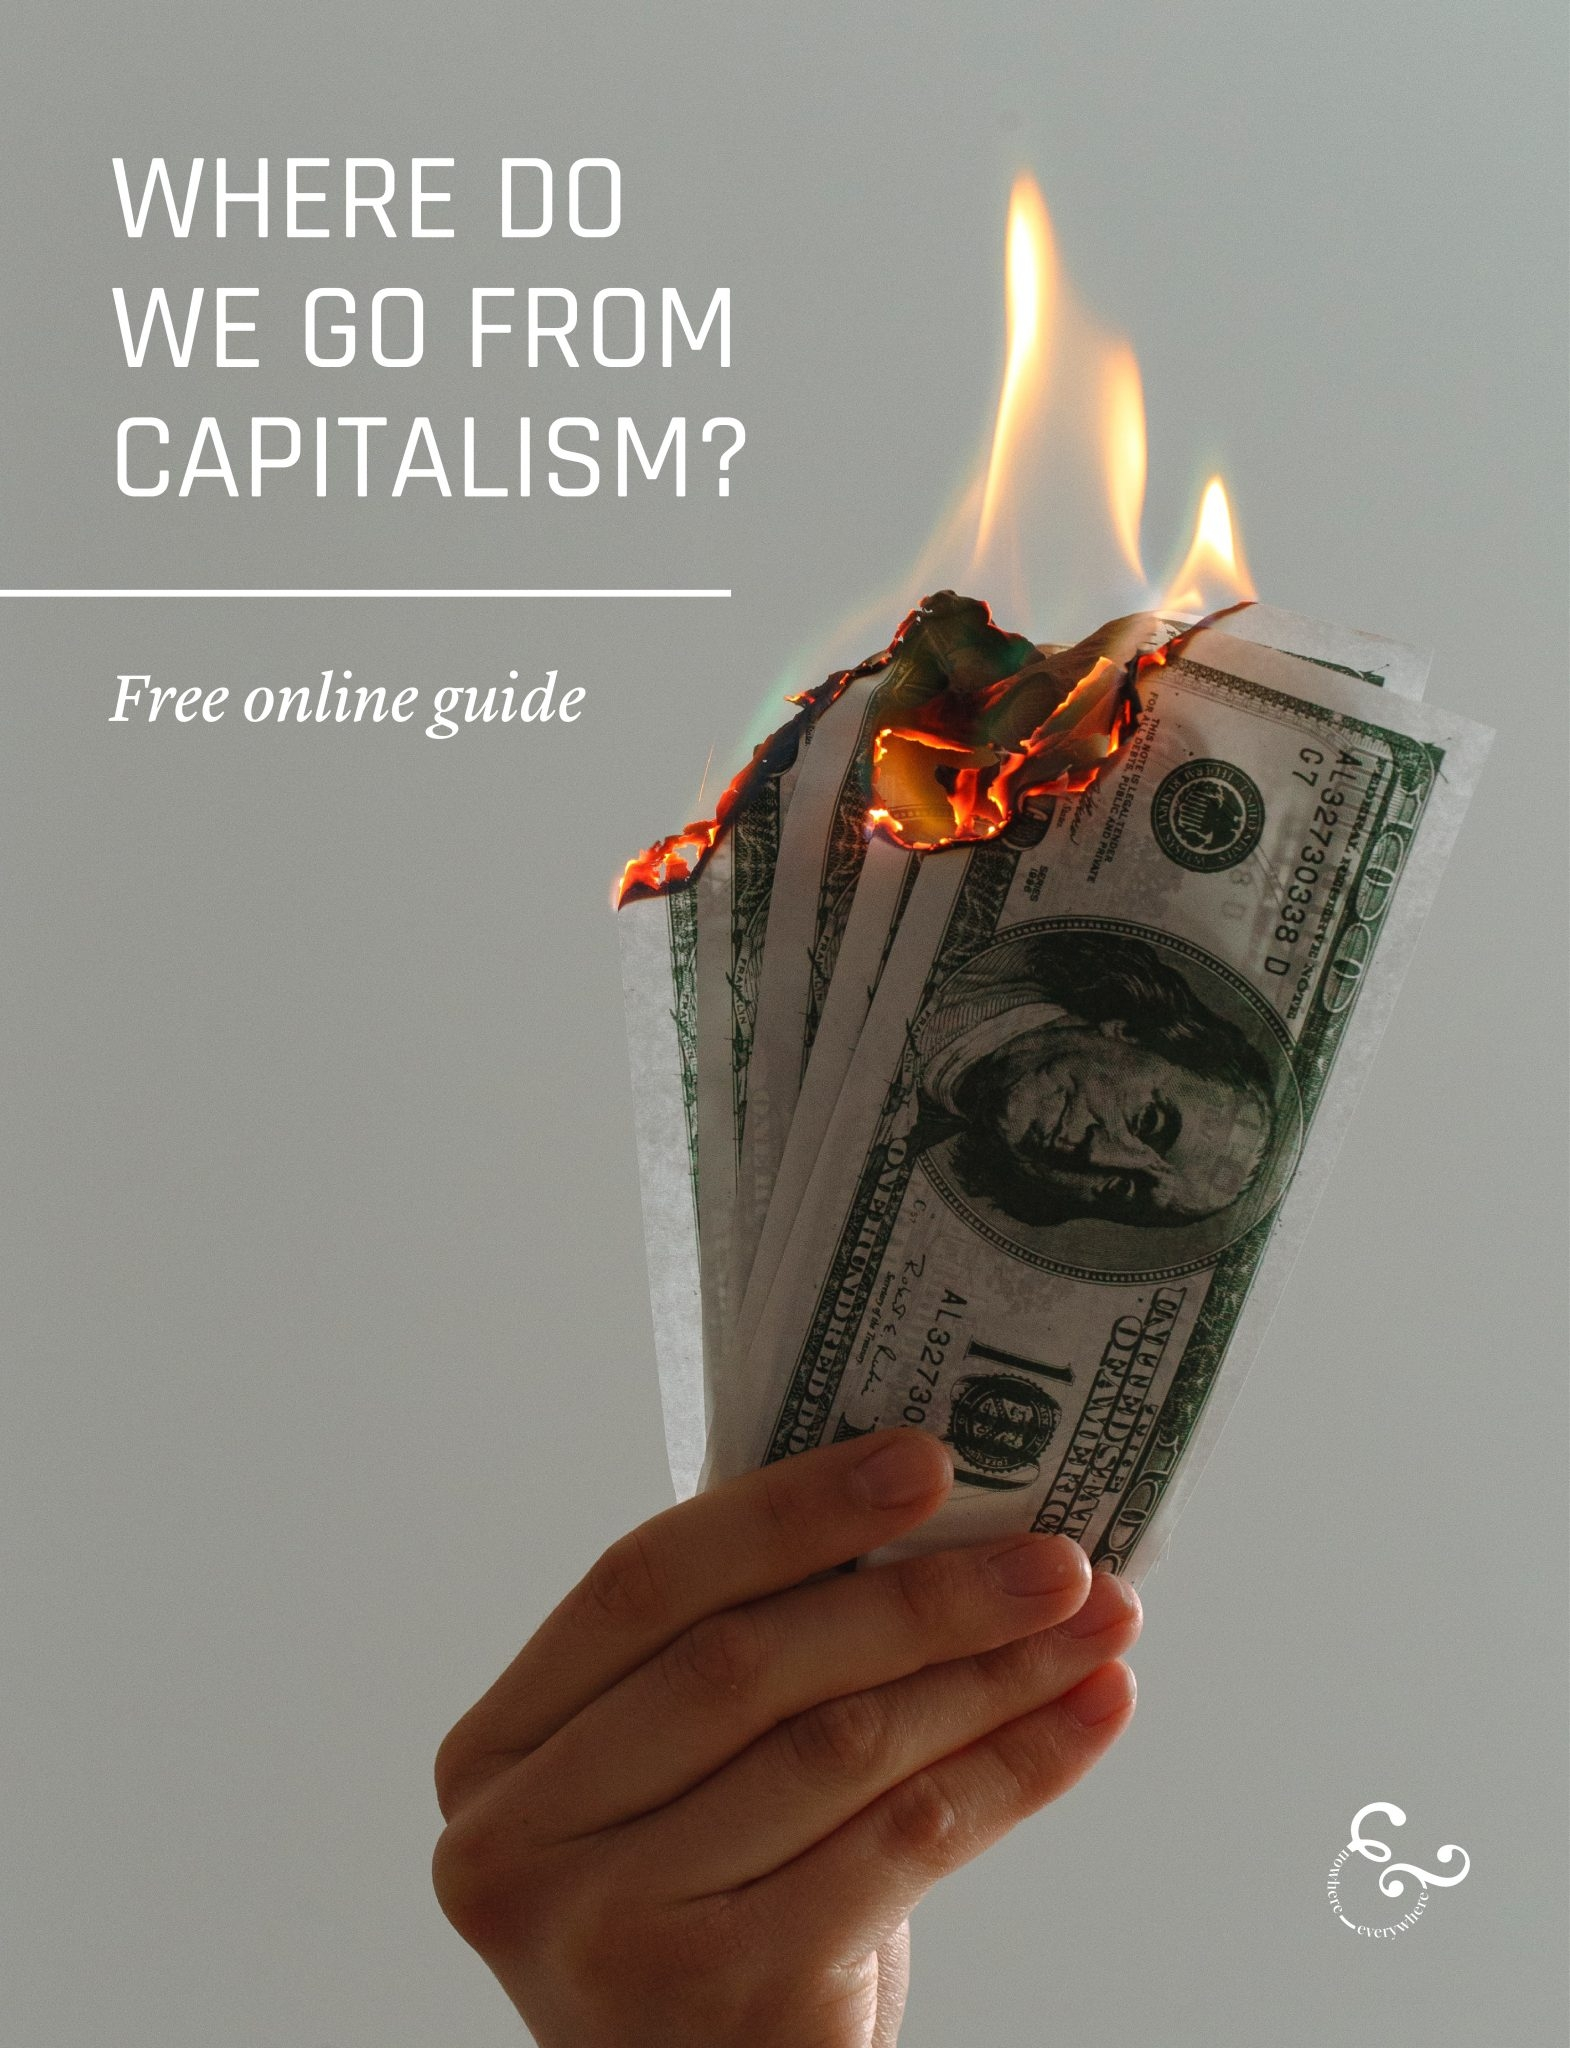 Where do we go from capitalism? Nowhere & Everywhere - New economic models - degrowth post growth hypercapitalism